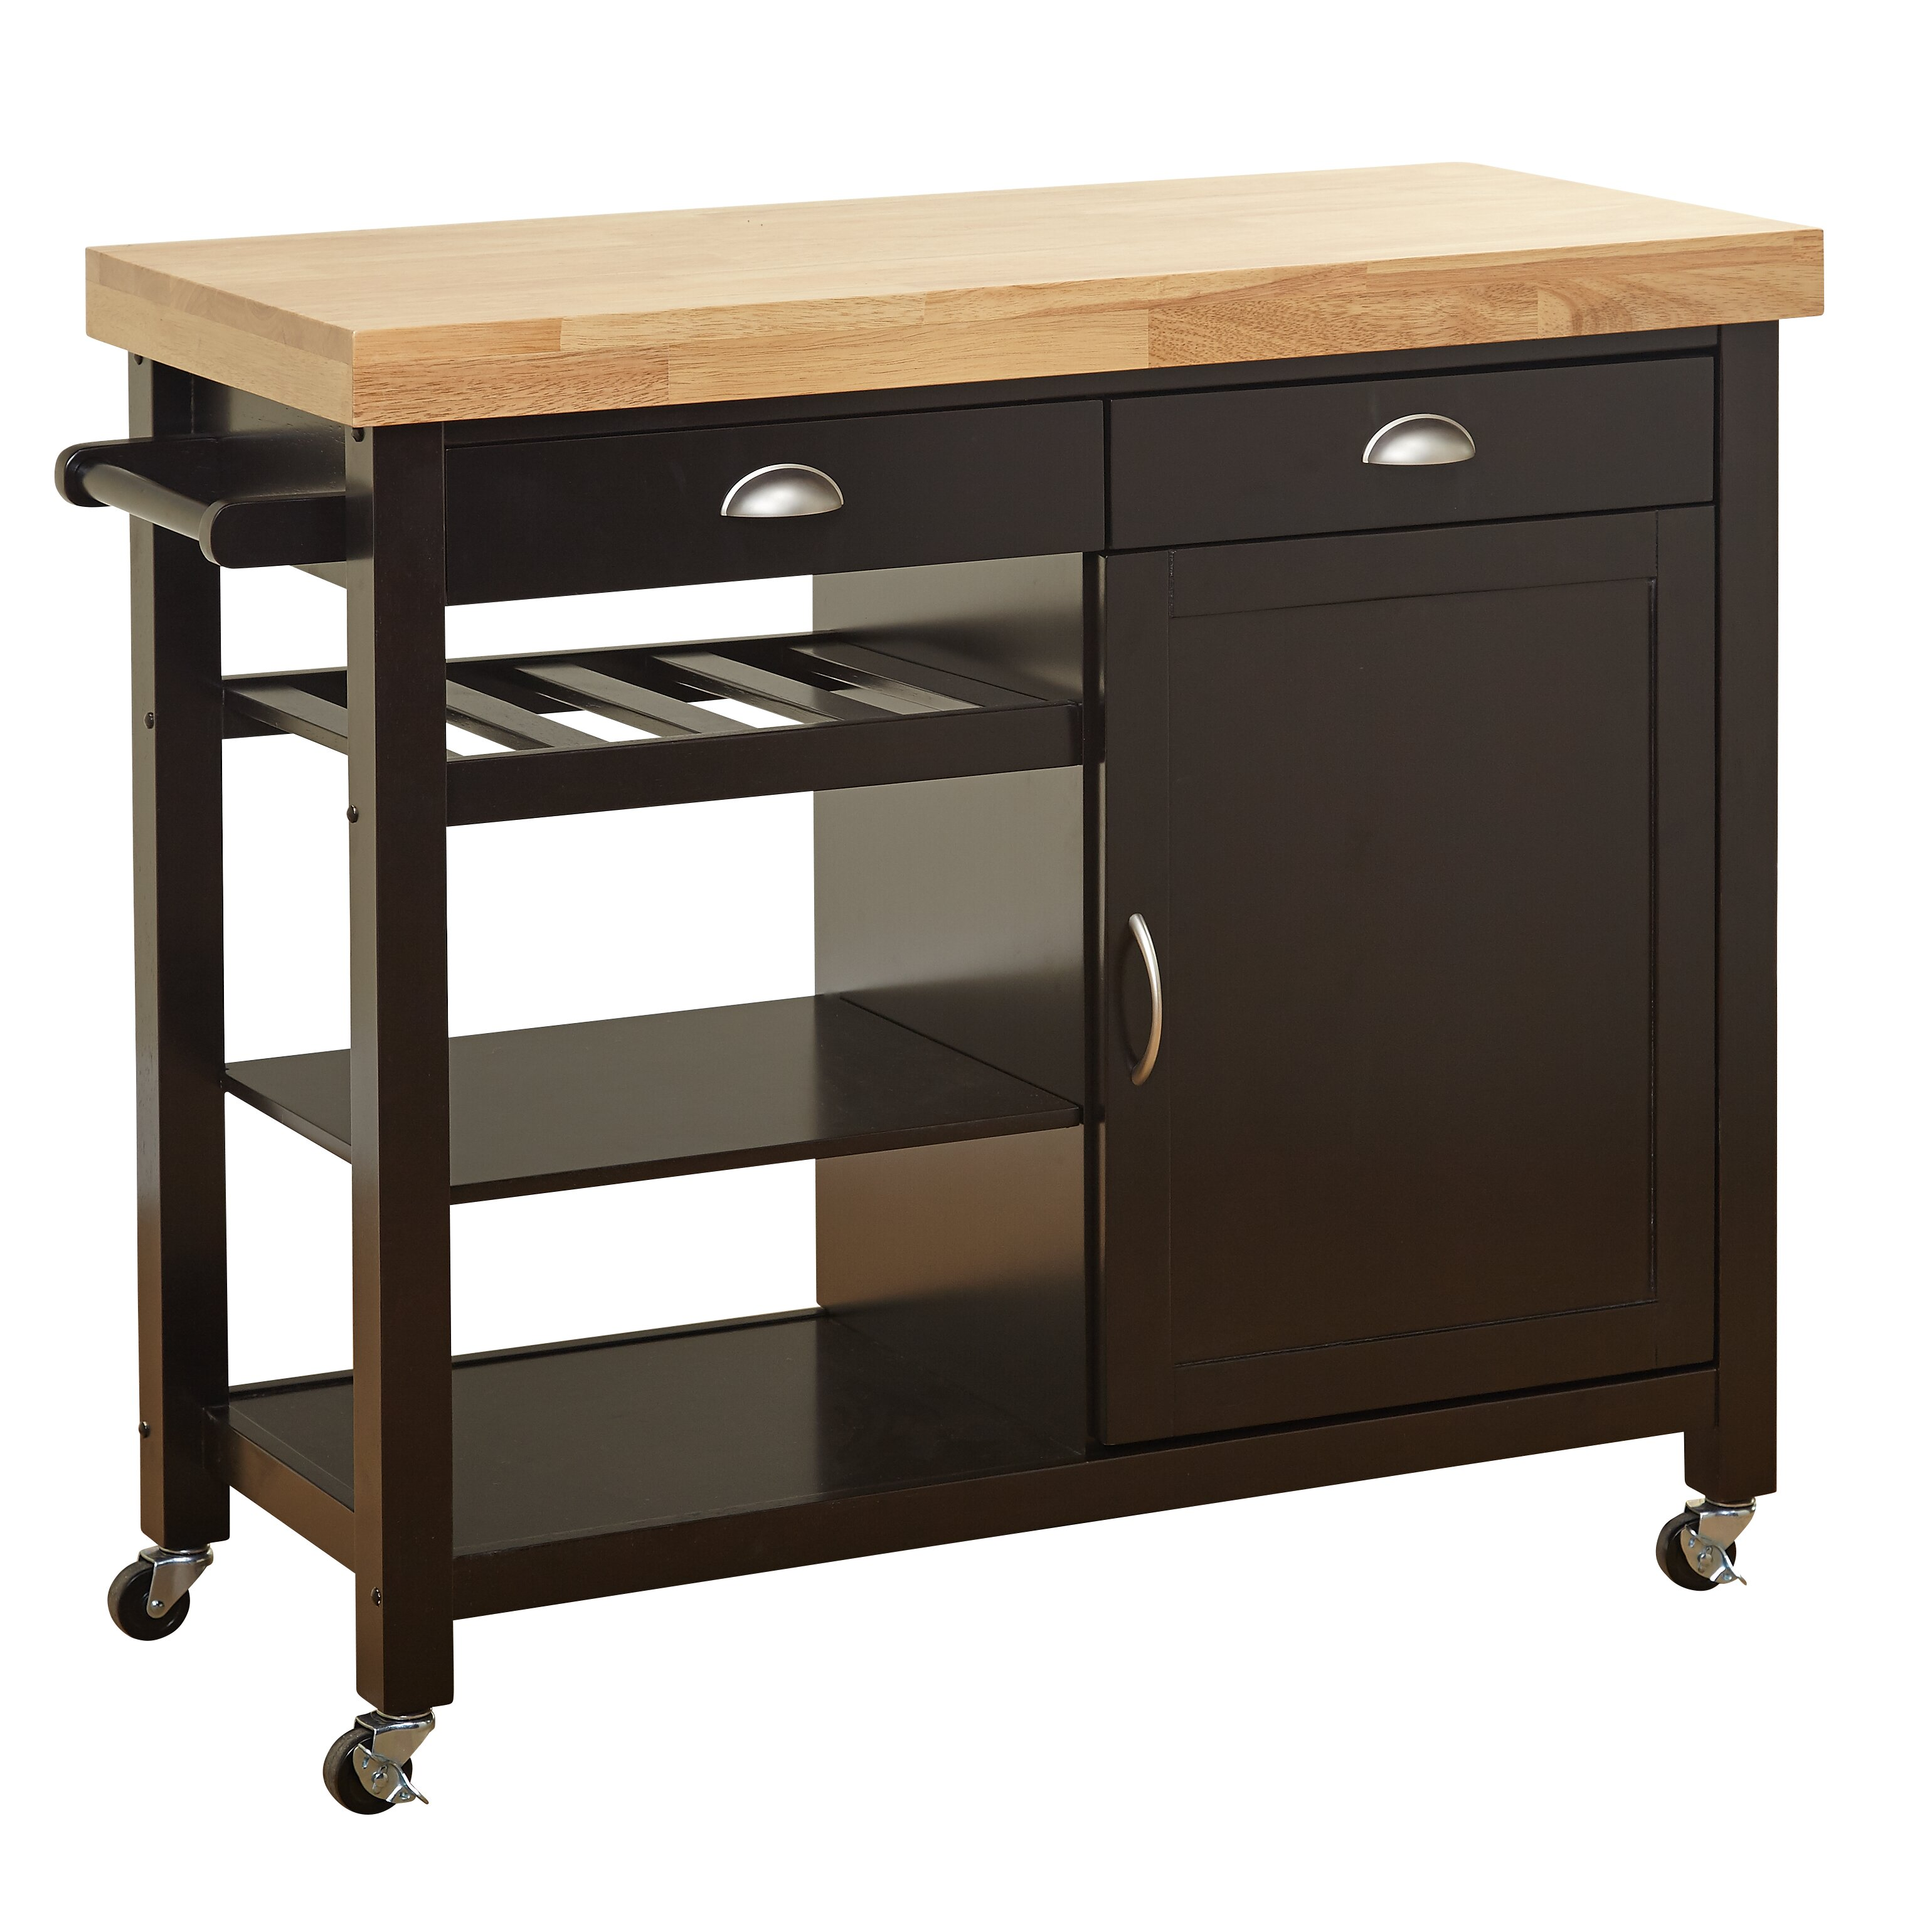 Beachcrest Home Hopewell Kitchen Cart With Wood Top